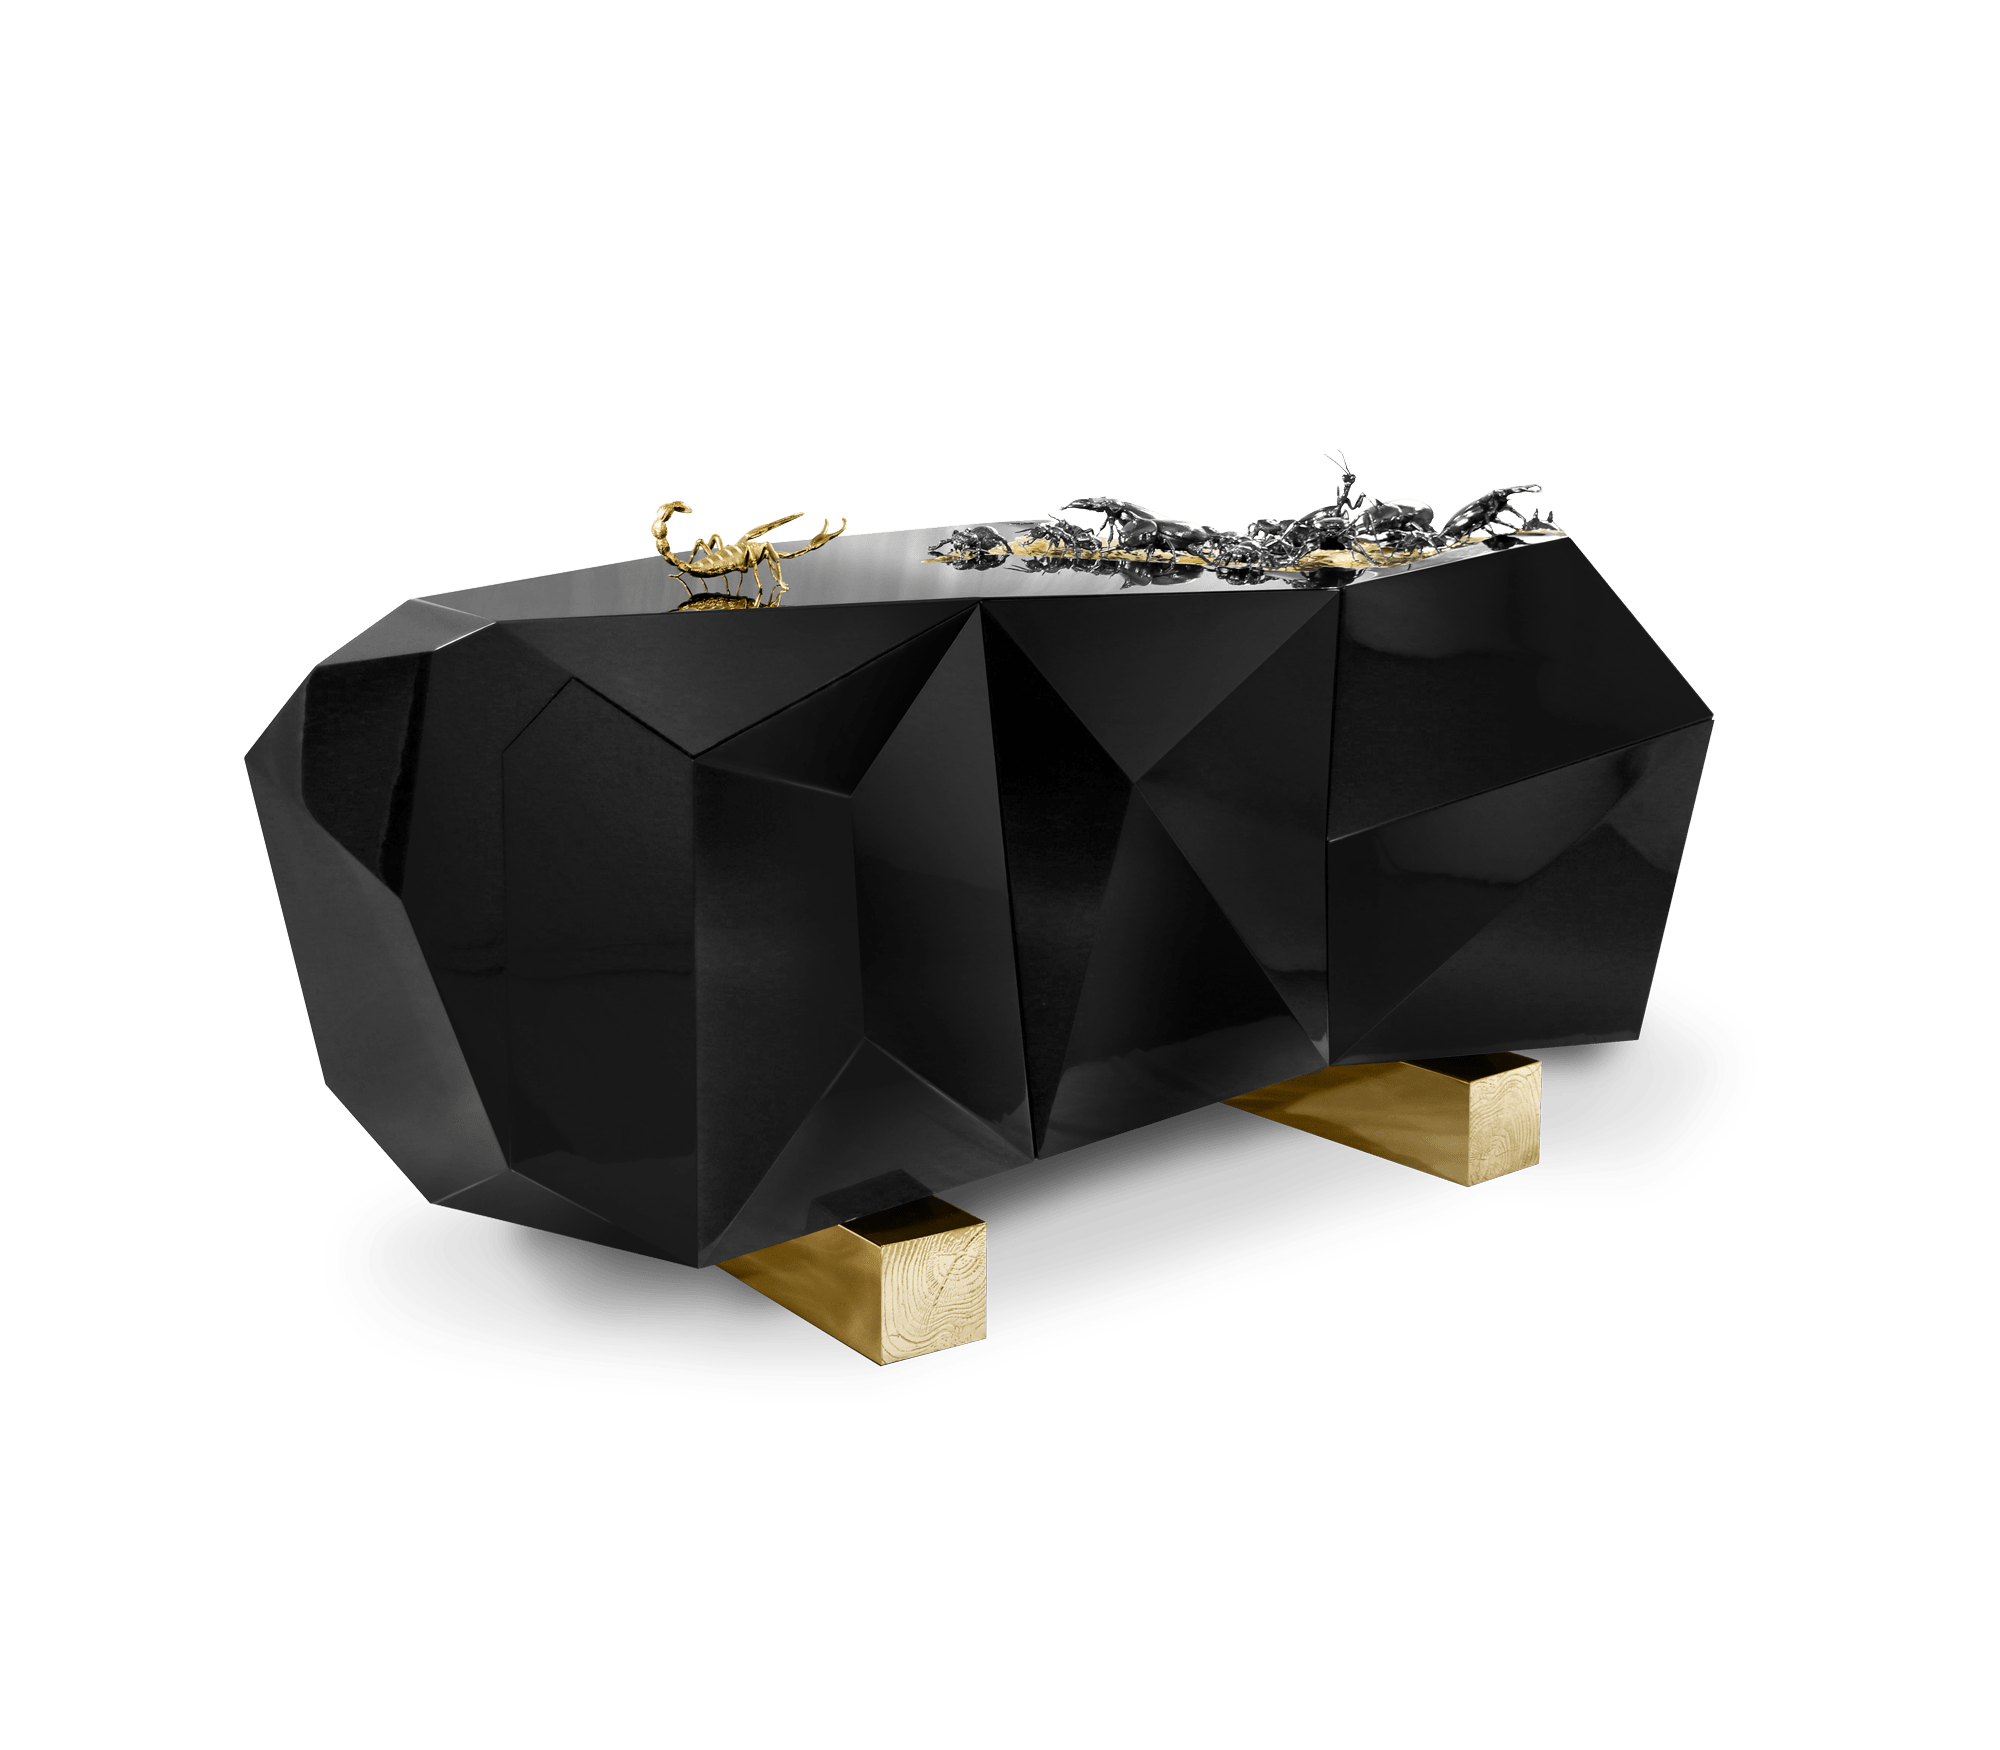 Diamond Metamorphosis Sideboard by Boca do Lobo